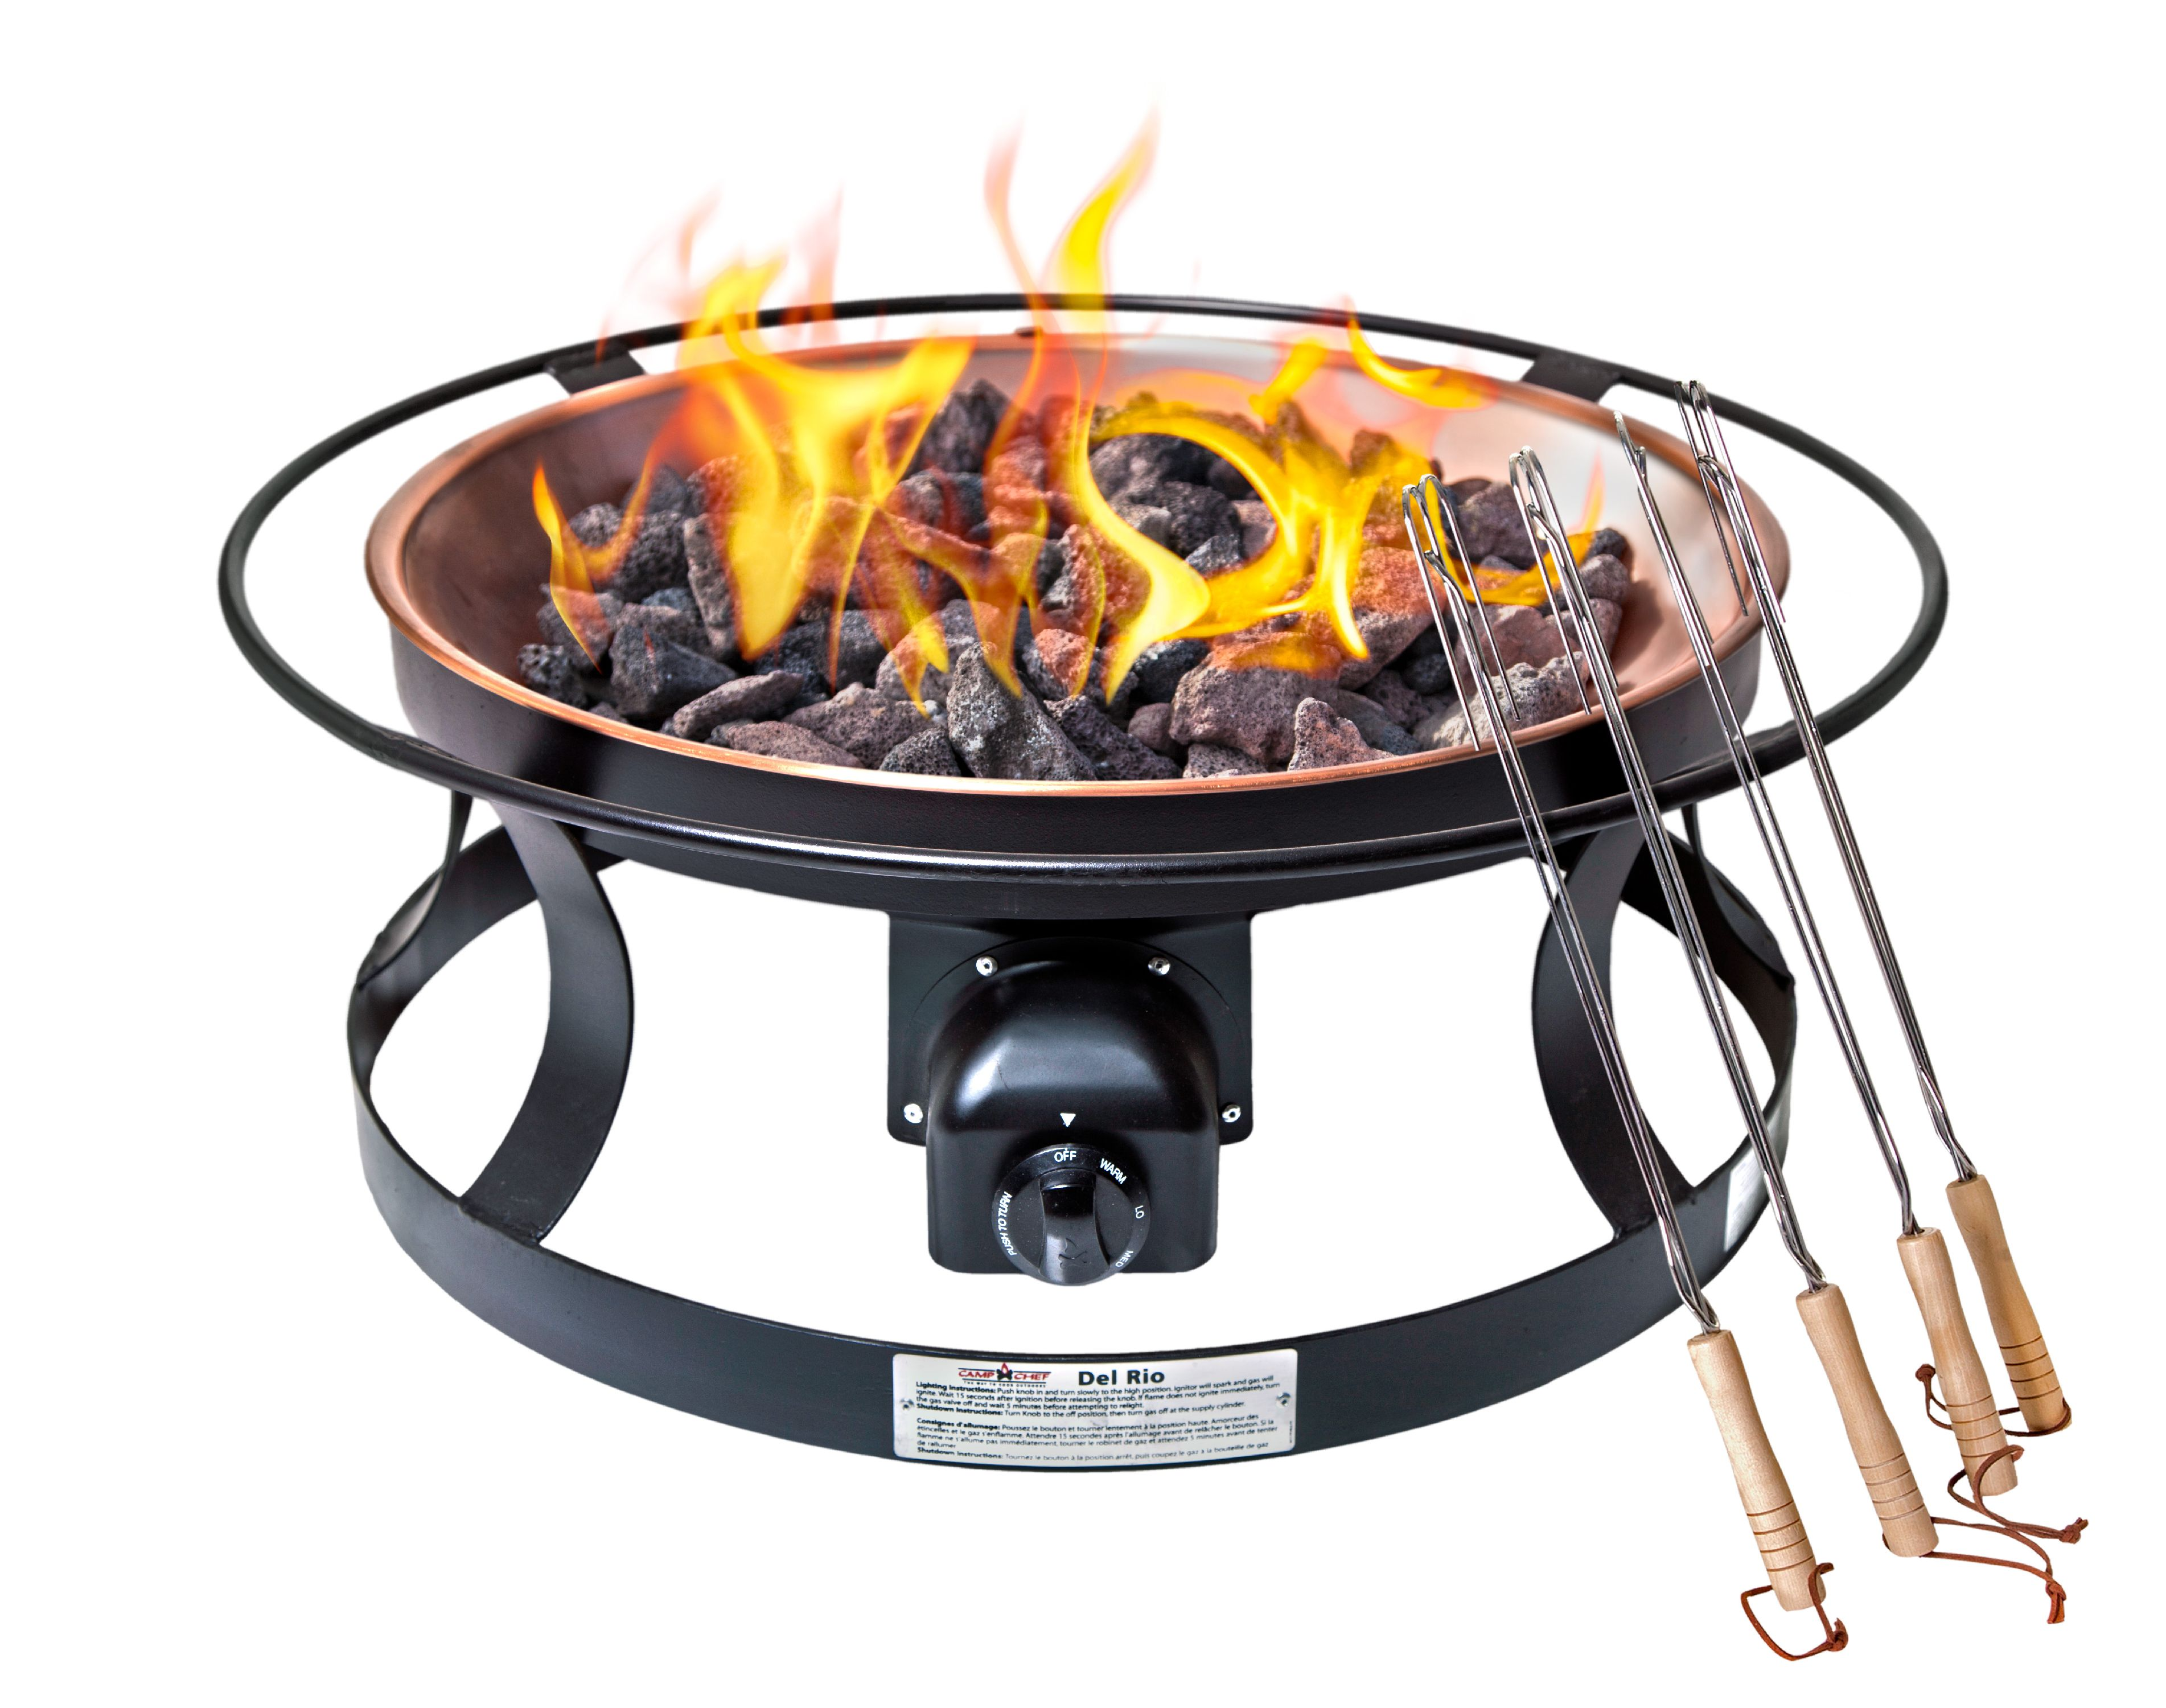 Del Rio Gas Firepit by Camp Chef